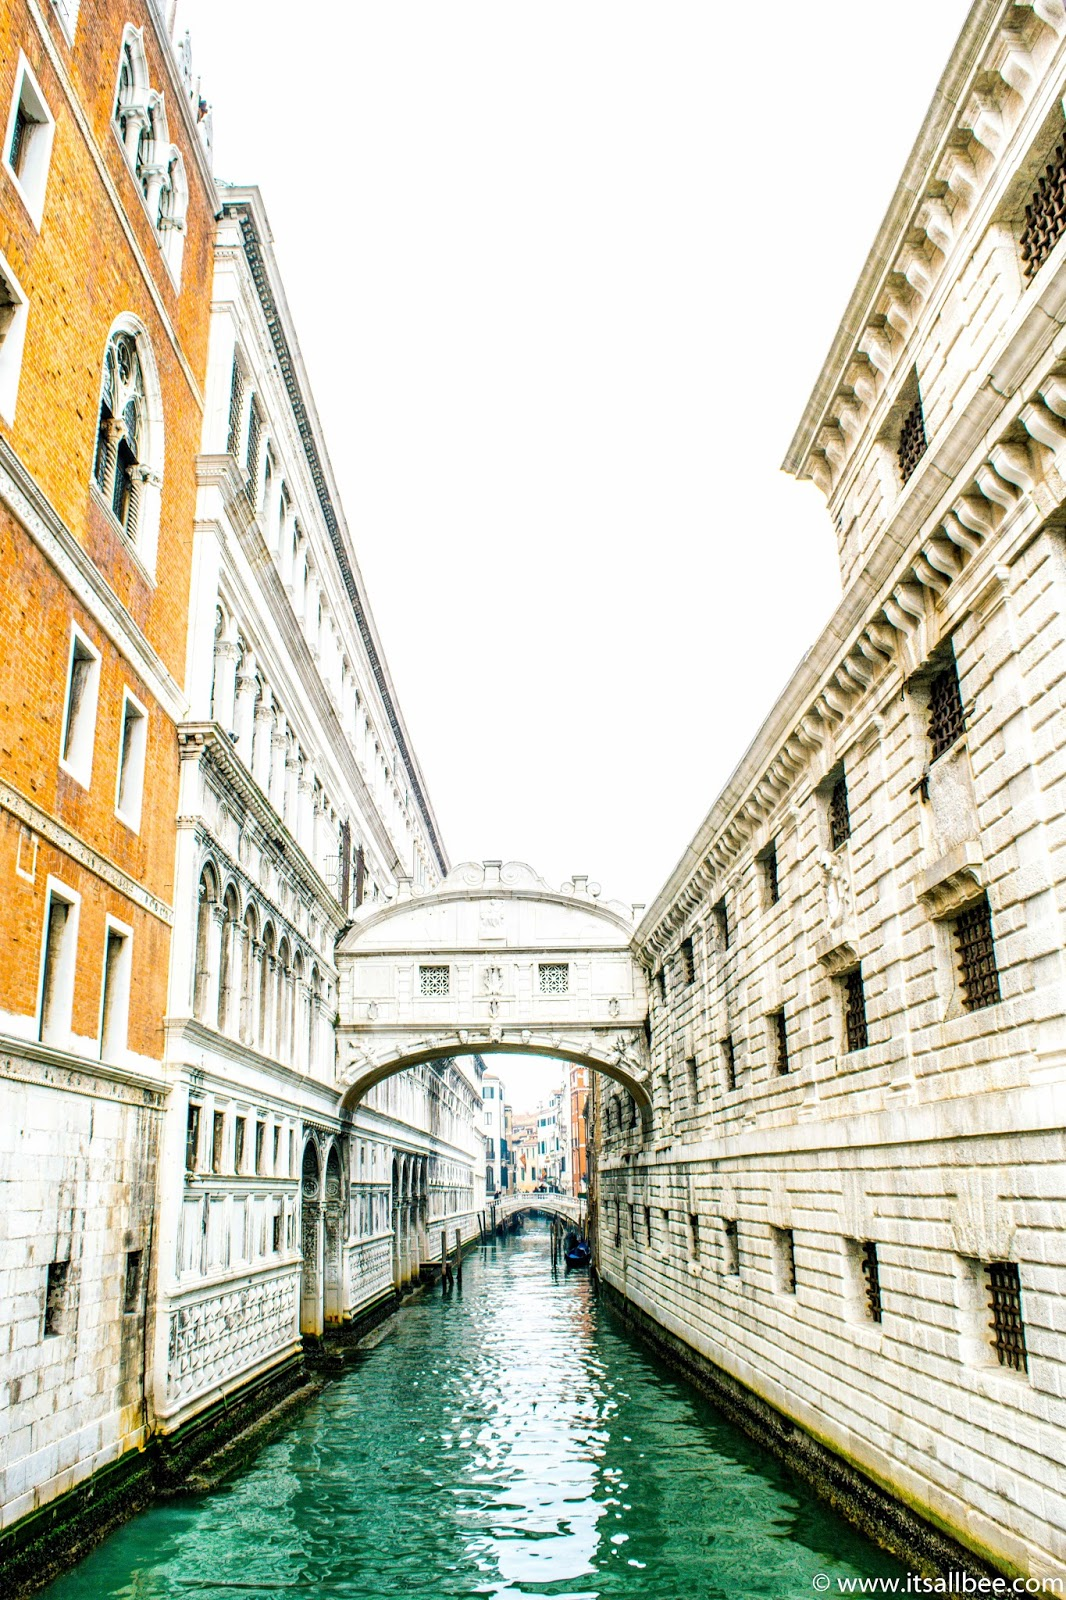 Venice In November | Bridge of Sighs